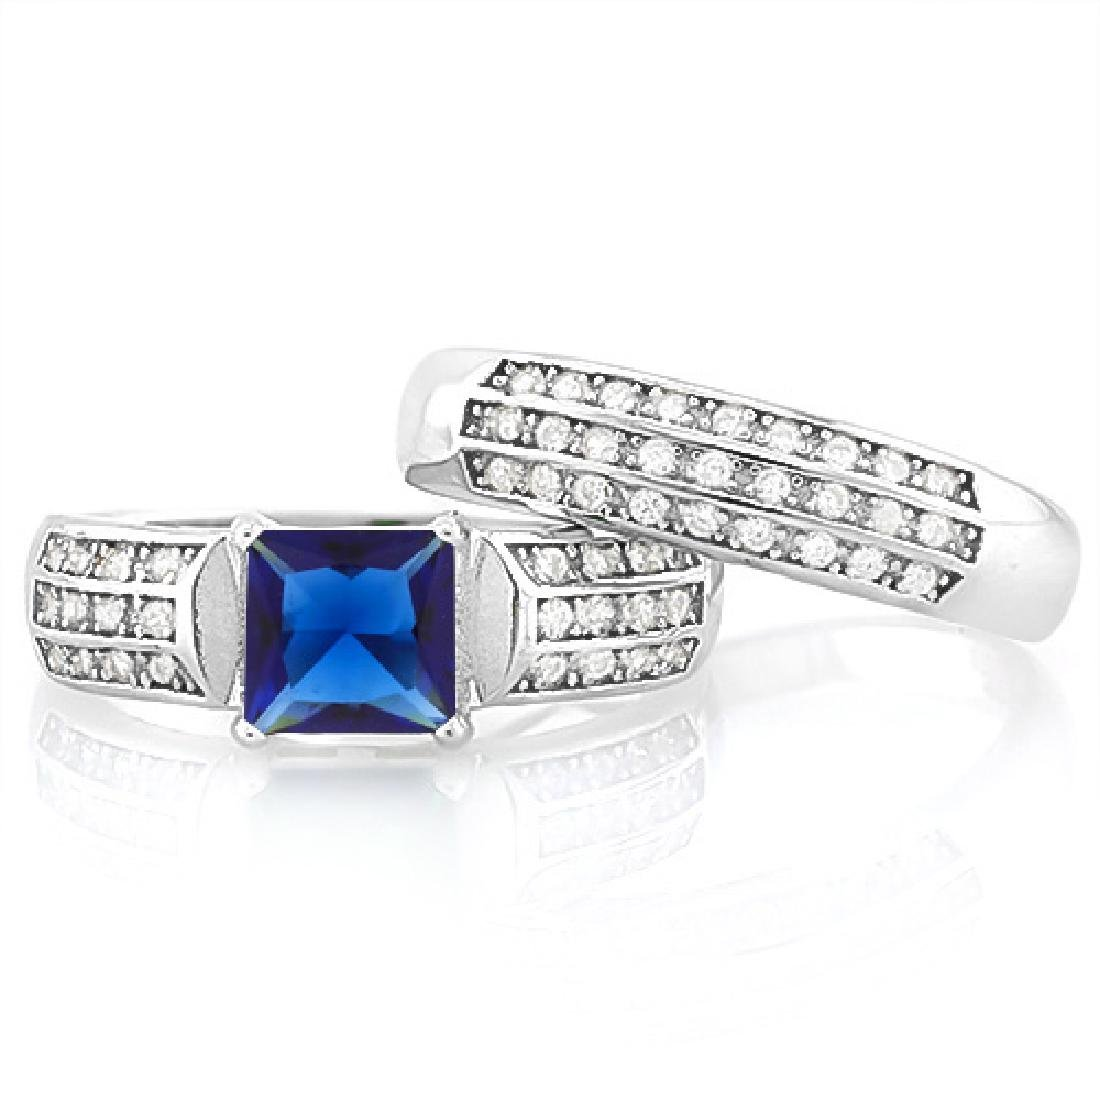 Large Lab Blue and White Sapphire 2 Ring SET in